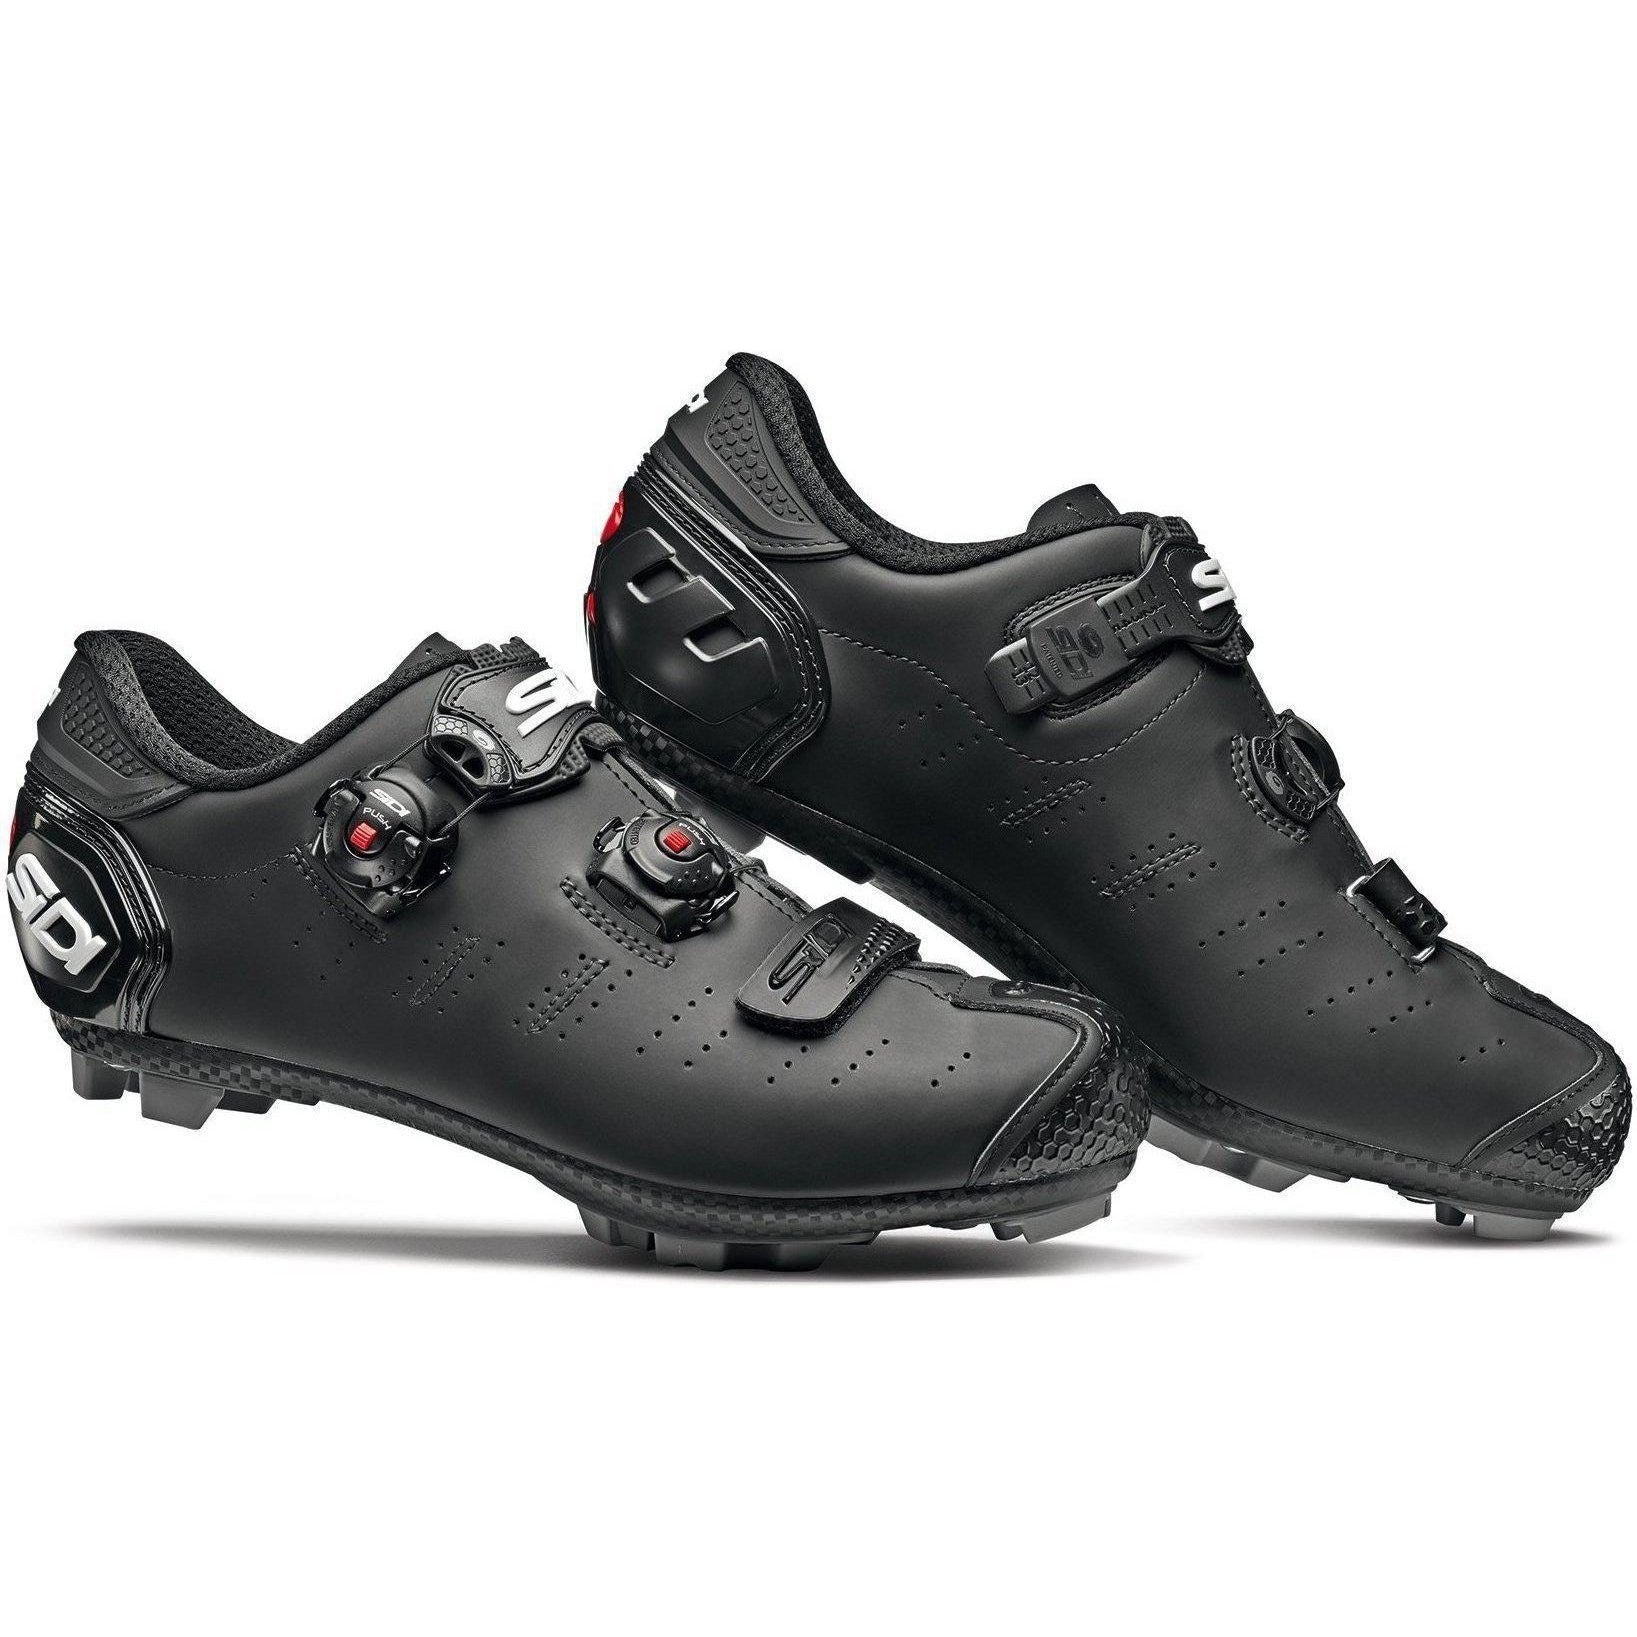 Sidi-Sidi Dragon 5 SRS Mega Fit MTB Shoes - Matt-Matt Black-40-SIDRAG5CMMATNEOP40-saddleback-elite-performance-cycling